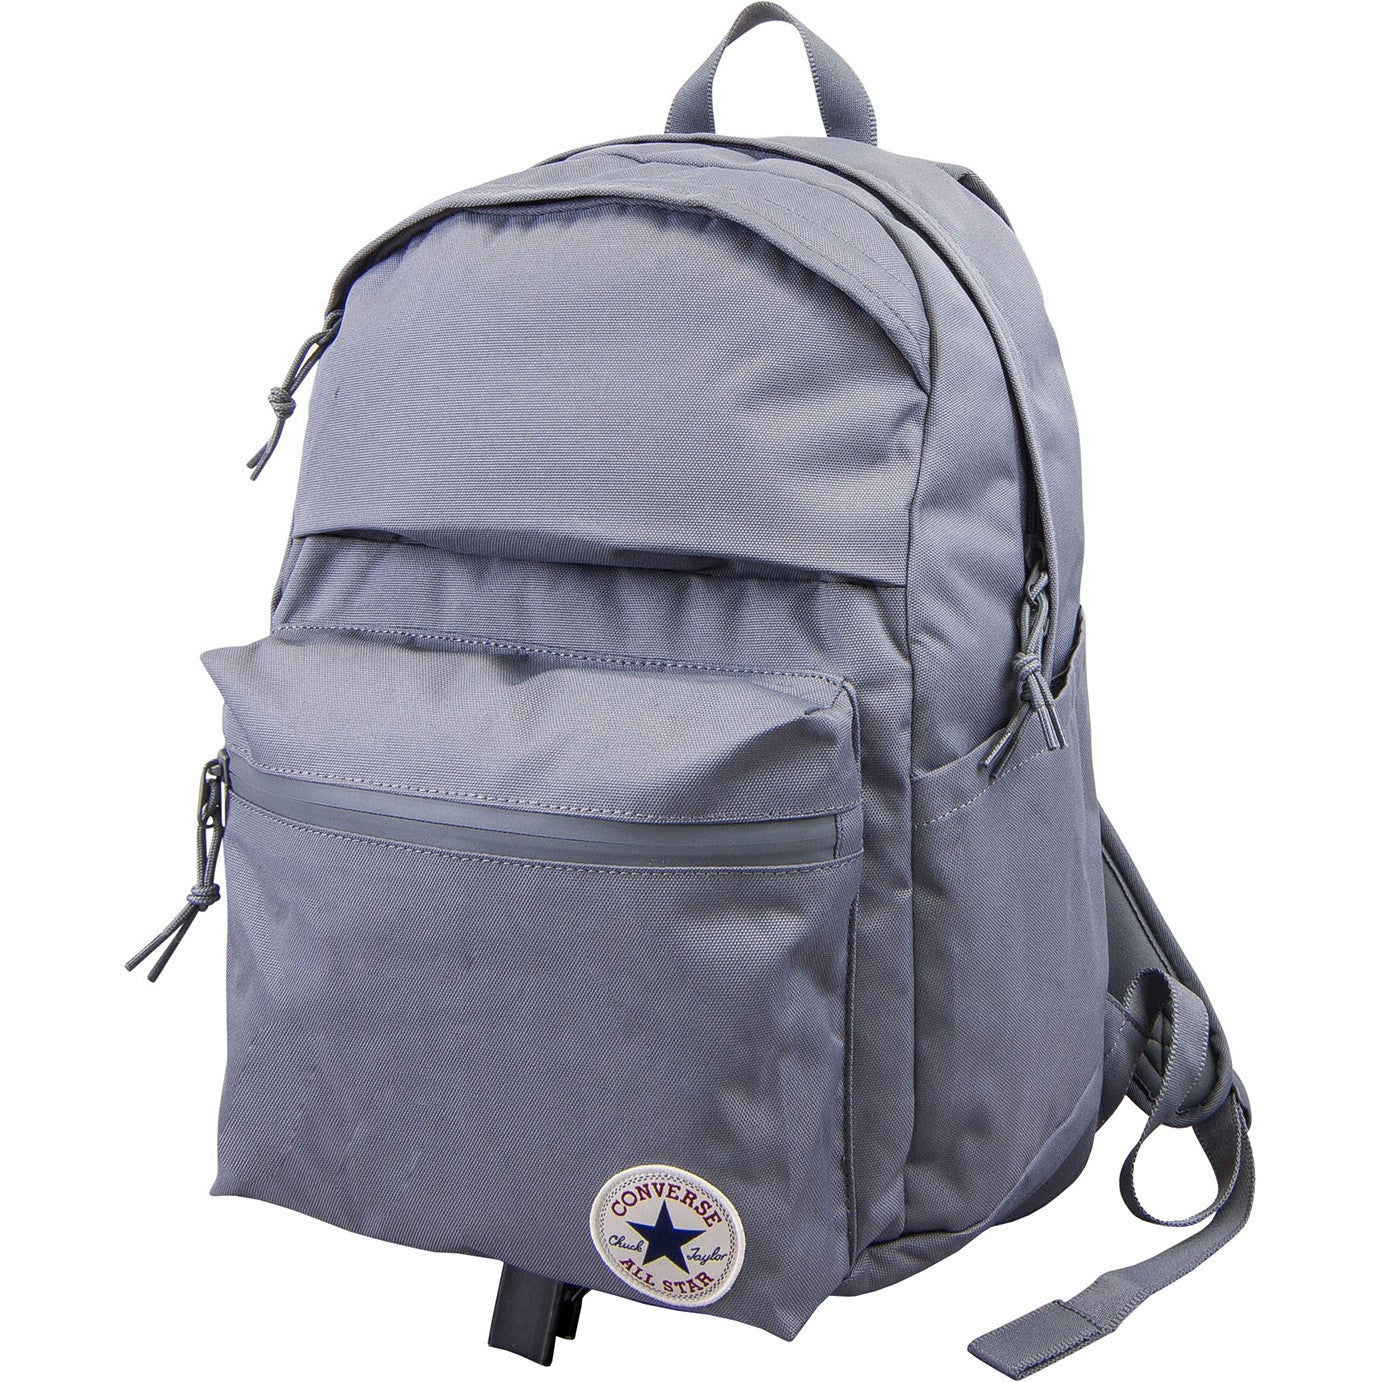 Converse Poly Chuck Plus 1.0 Unisex Rucksack - Cool Grey One Size  b239152cc79e5